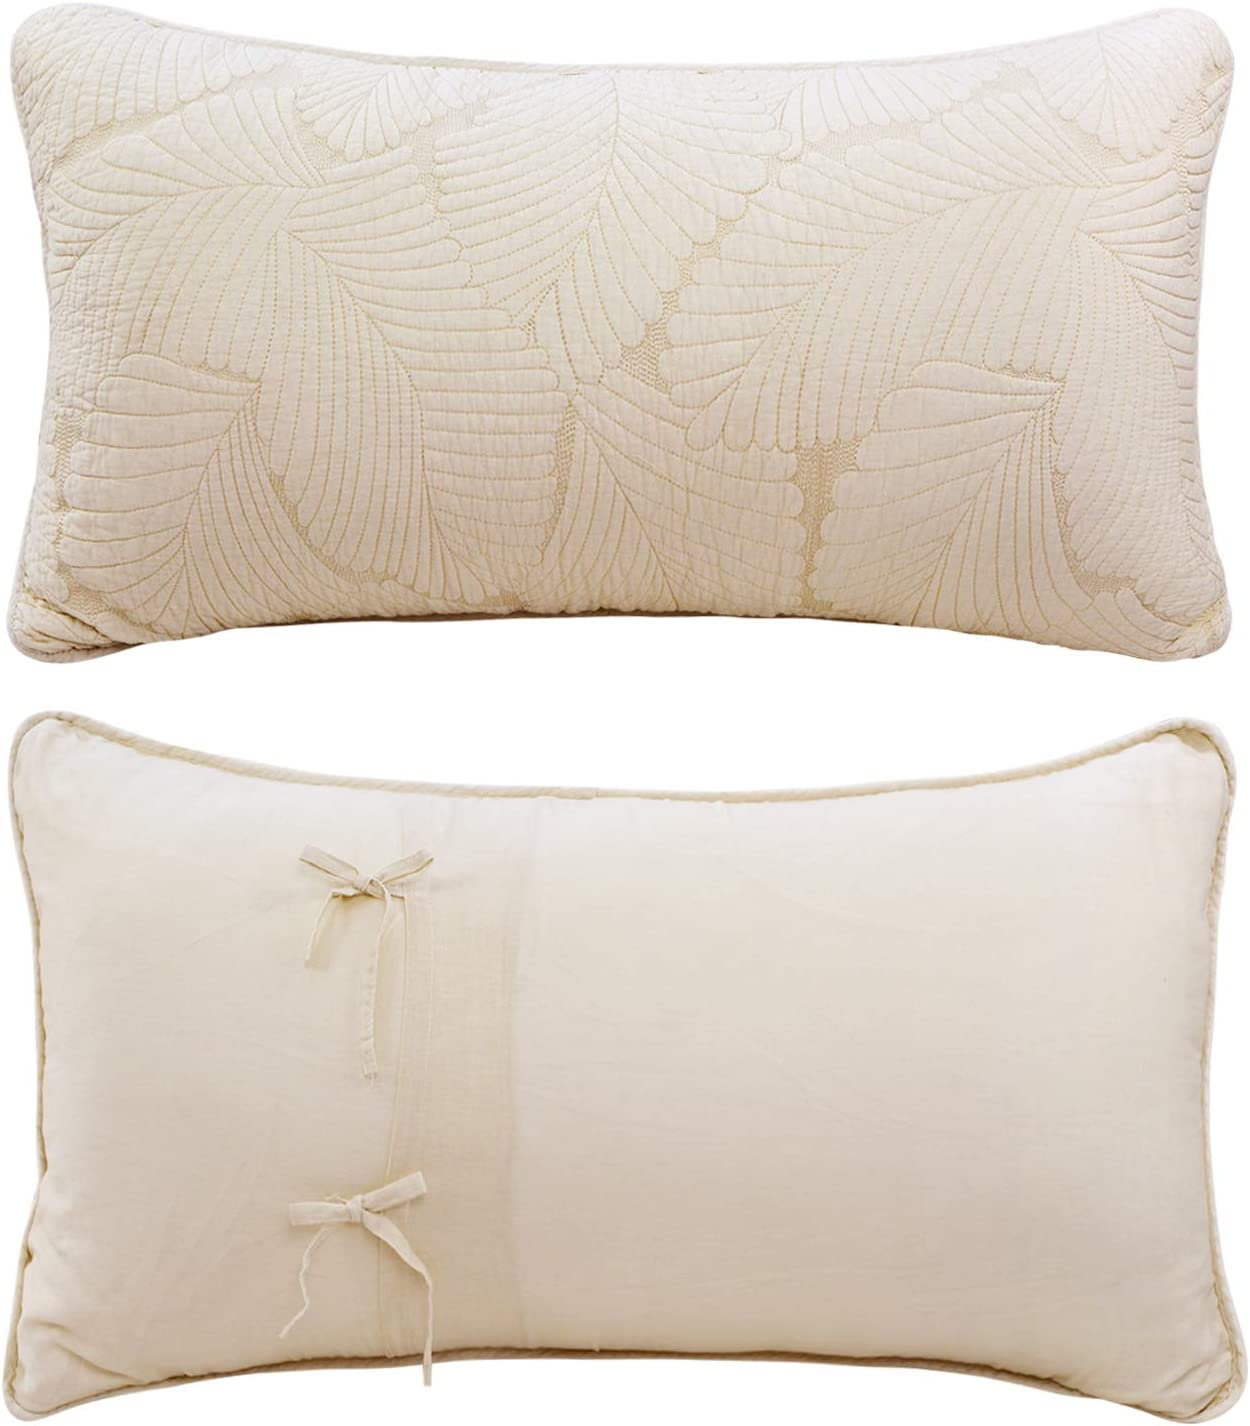 Simply Shabby Chic Set Of 2 King Size Pillow Shams Quilted White